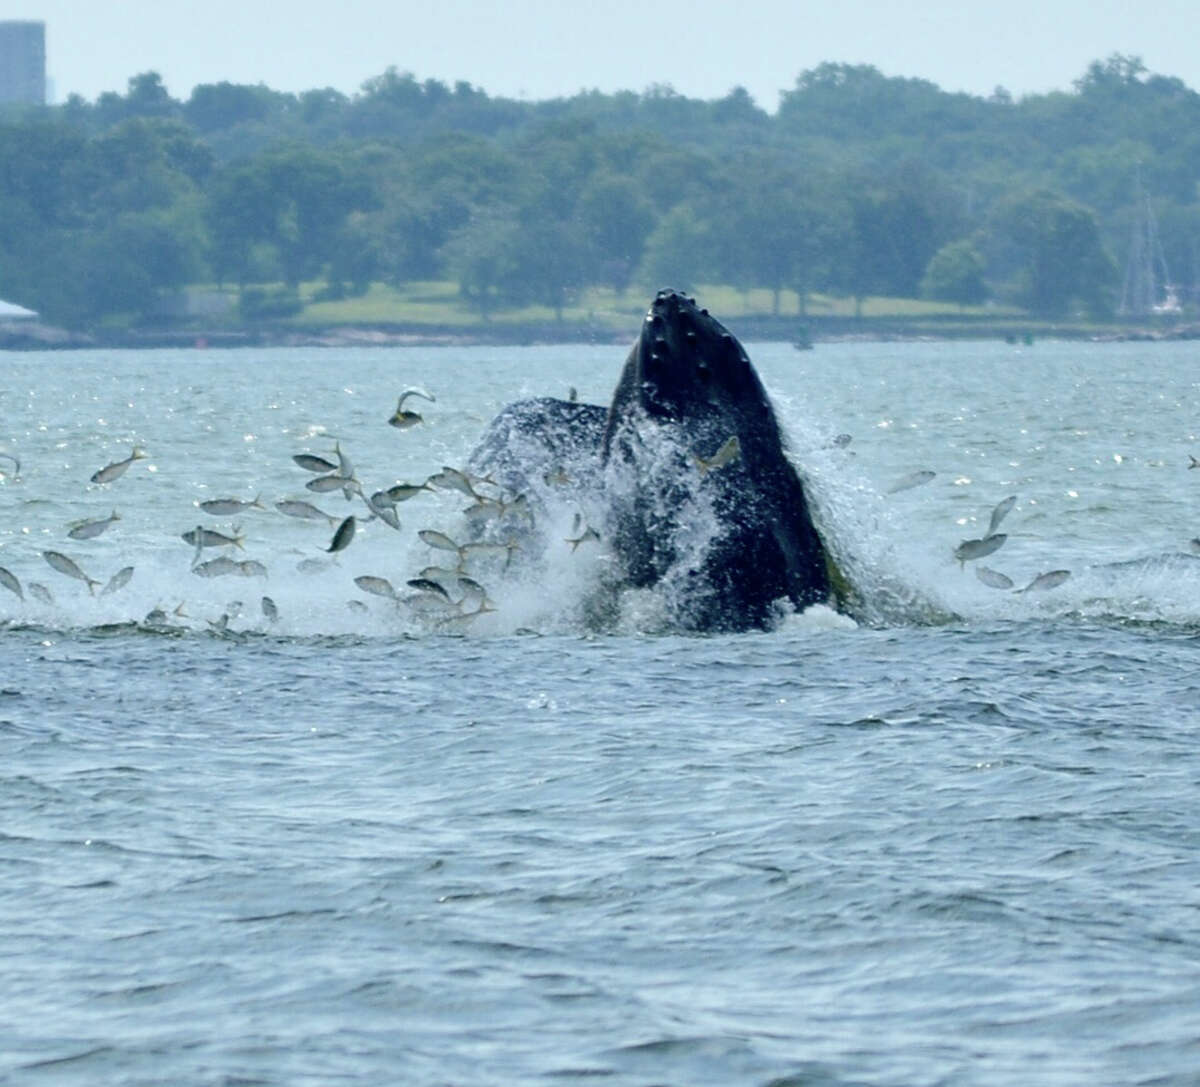 """Sal Rodriguez, a captain for Copps Island Oysters, was minding his own business in July, cleaning his boat near Greens Ledge Lighthouse when suddenly something startled him. """"The whale jumped up right next to me,"""" Rodriguez said. """"It was the first time I've ever seen one. I thought it was a boat coming right toward me, but it was a whale."""" Humpback whales had returned to Long Island Sound, following schools of menhaden fish, and were sighted on at least three occasions along the Connecticut coastline from Norwalk to Greenwich. Read more."""